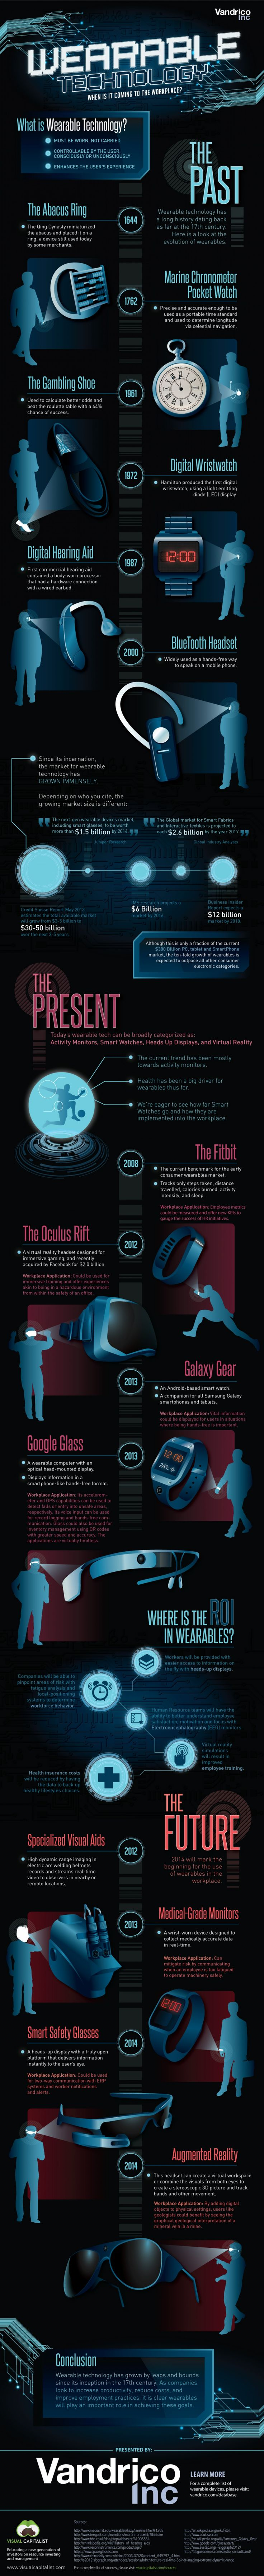 Wearable Technology: When is it Coming to the Workplace - infographic